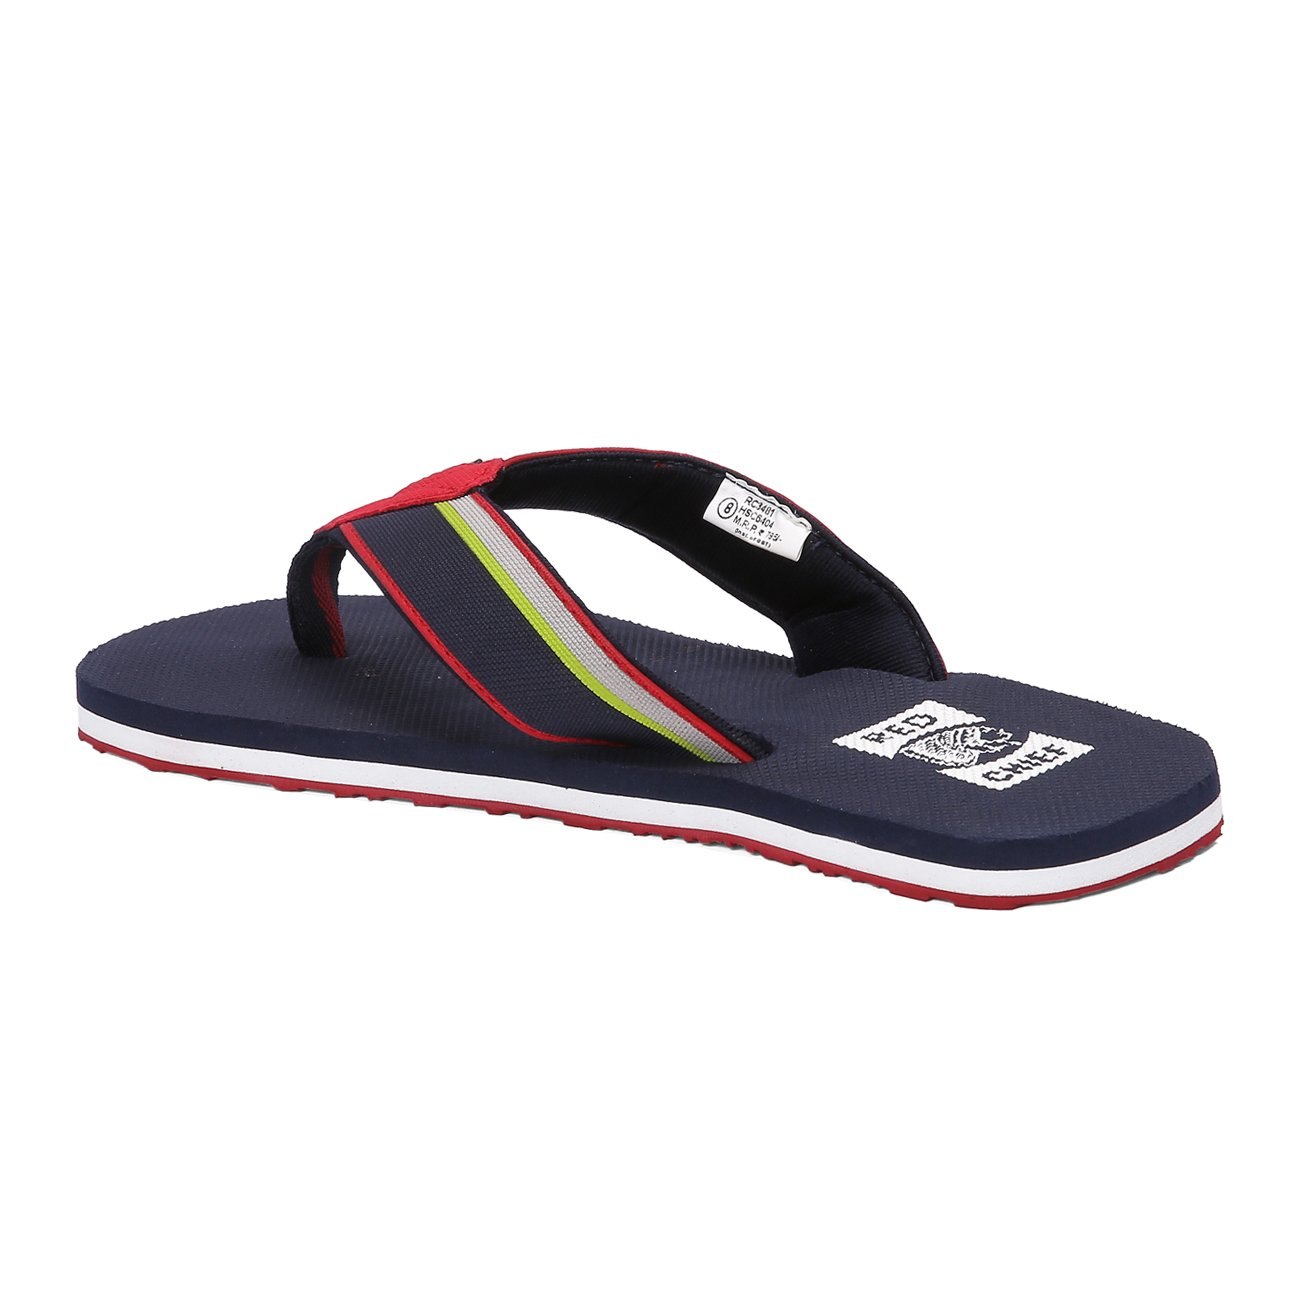 0d0df5d506c2 Red Chief Blue Men s Casual Flip Flop (RC3481 061)  Buy Online at Low  Prices in India - Amazon.in